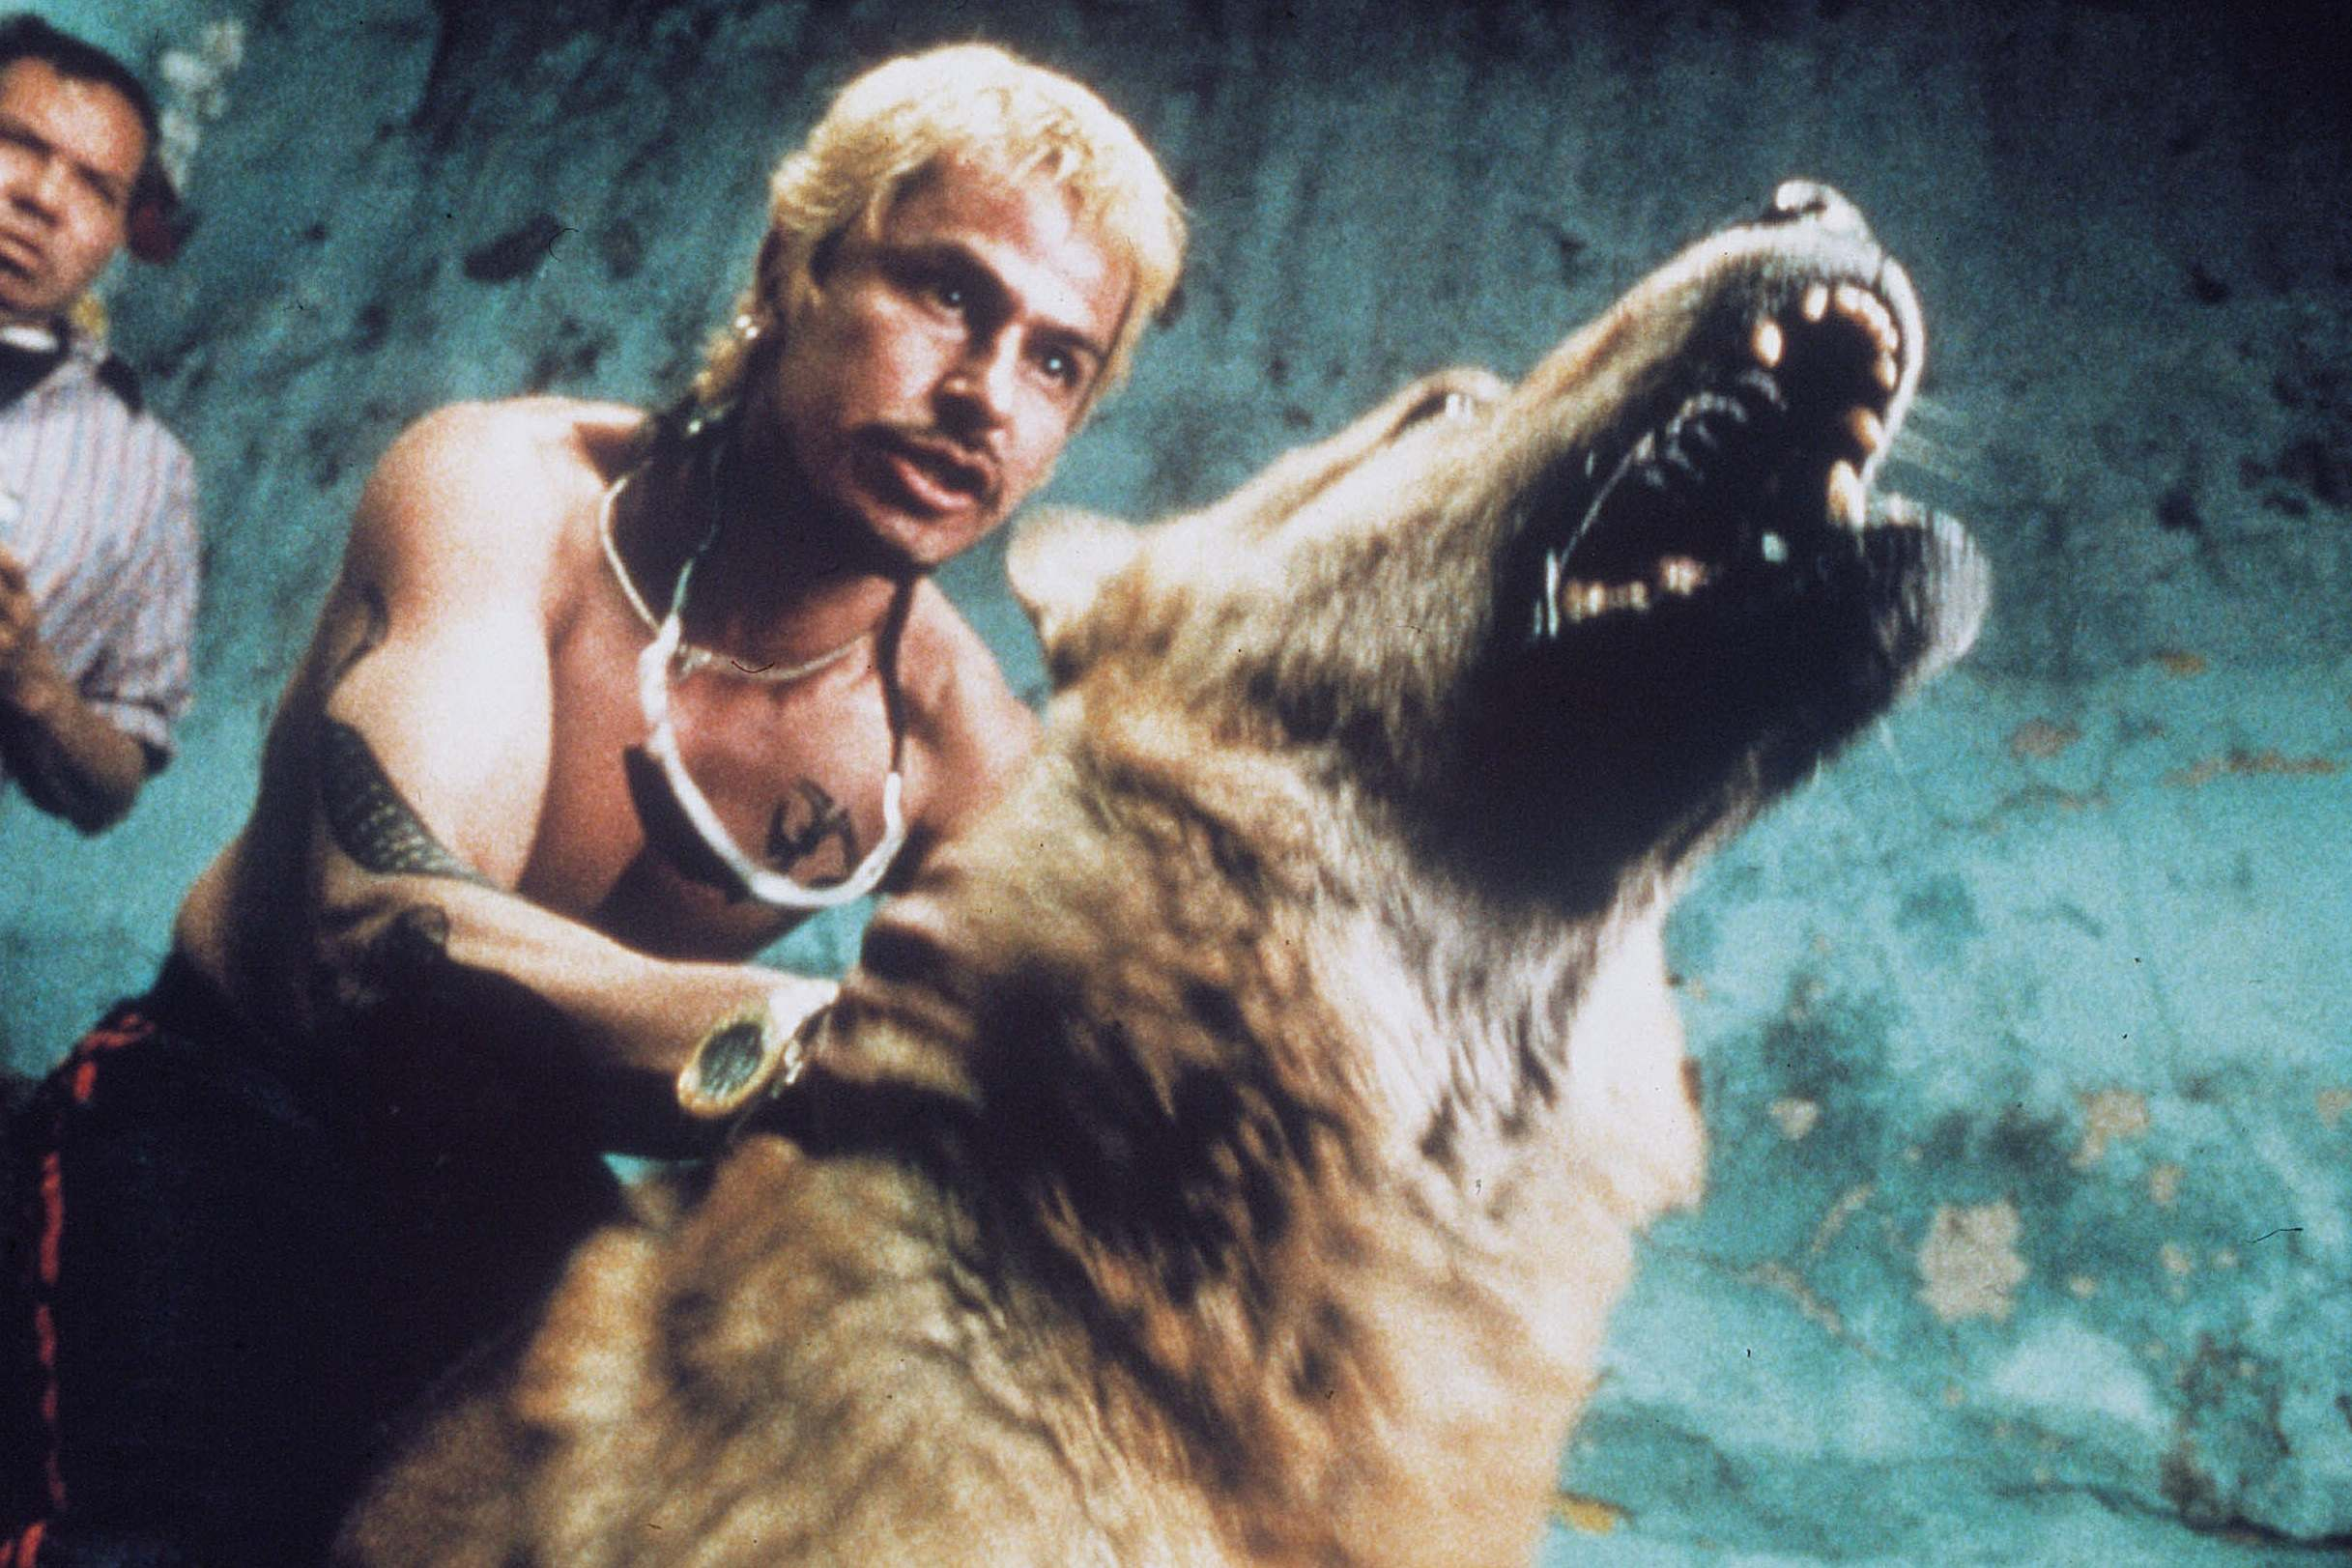 READ >> Iñárritu Celebrates 20th Anniversary of 'Amores Perros' with a Reunion